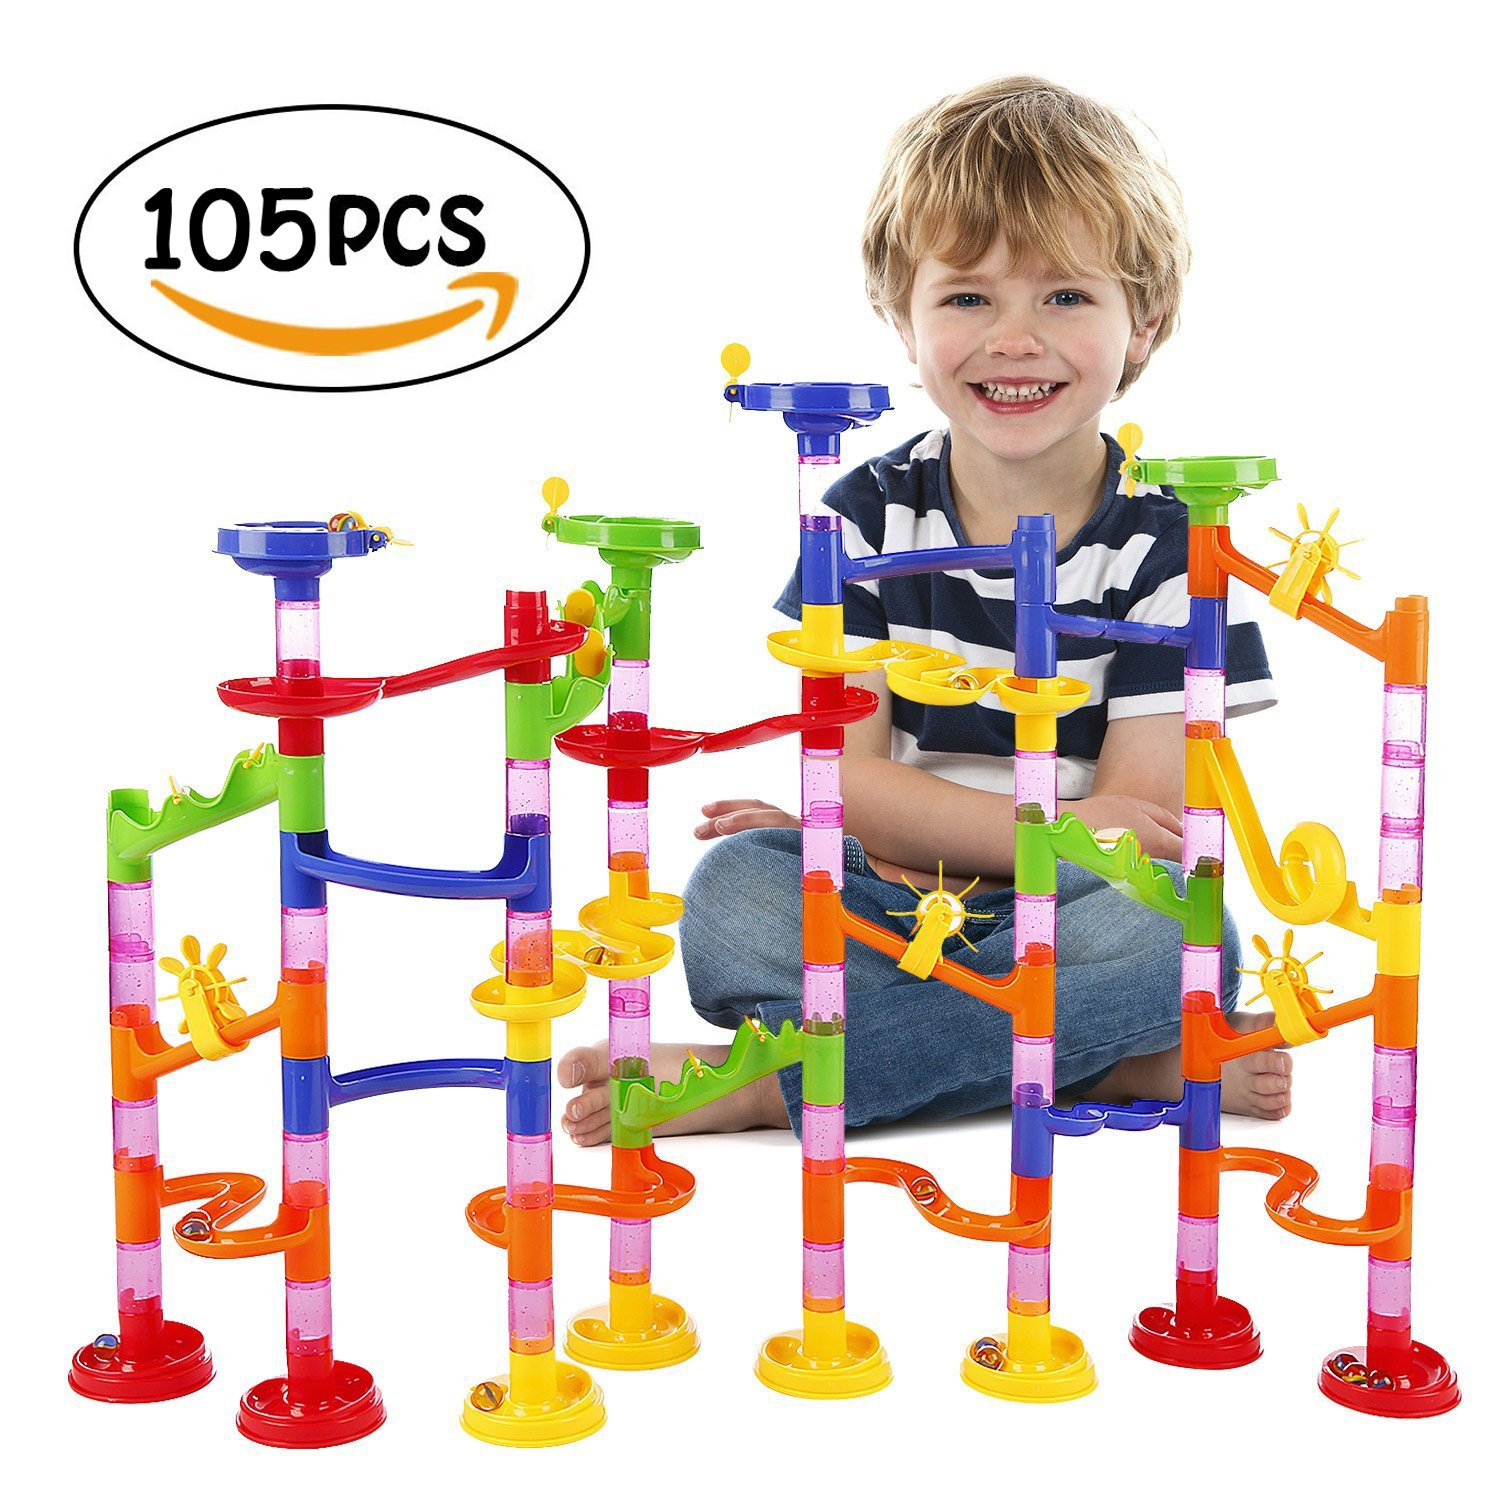 Marble Run Railway Toy BATTOP Marble Run Coaster Railway Construction Child Building Blocks DIY Game for Over 4 Years Old Kids Review